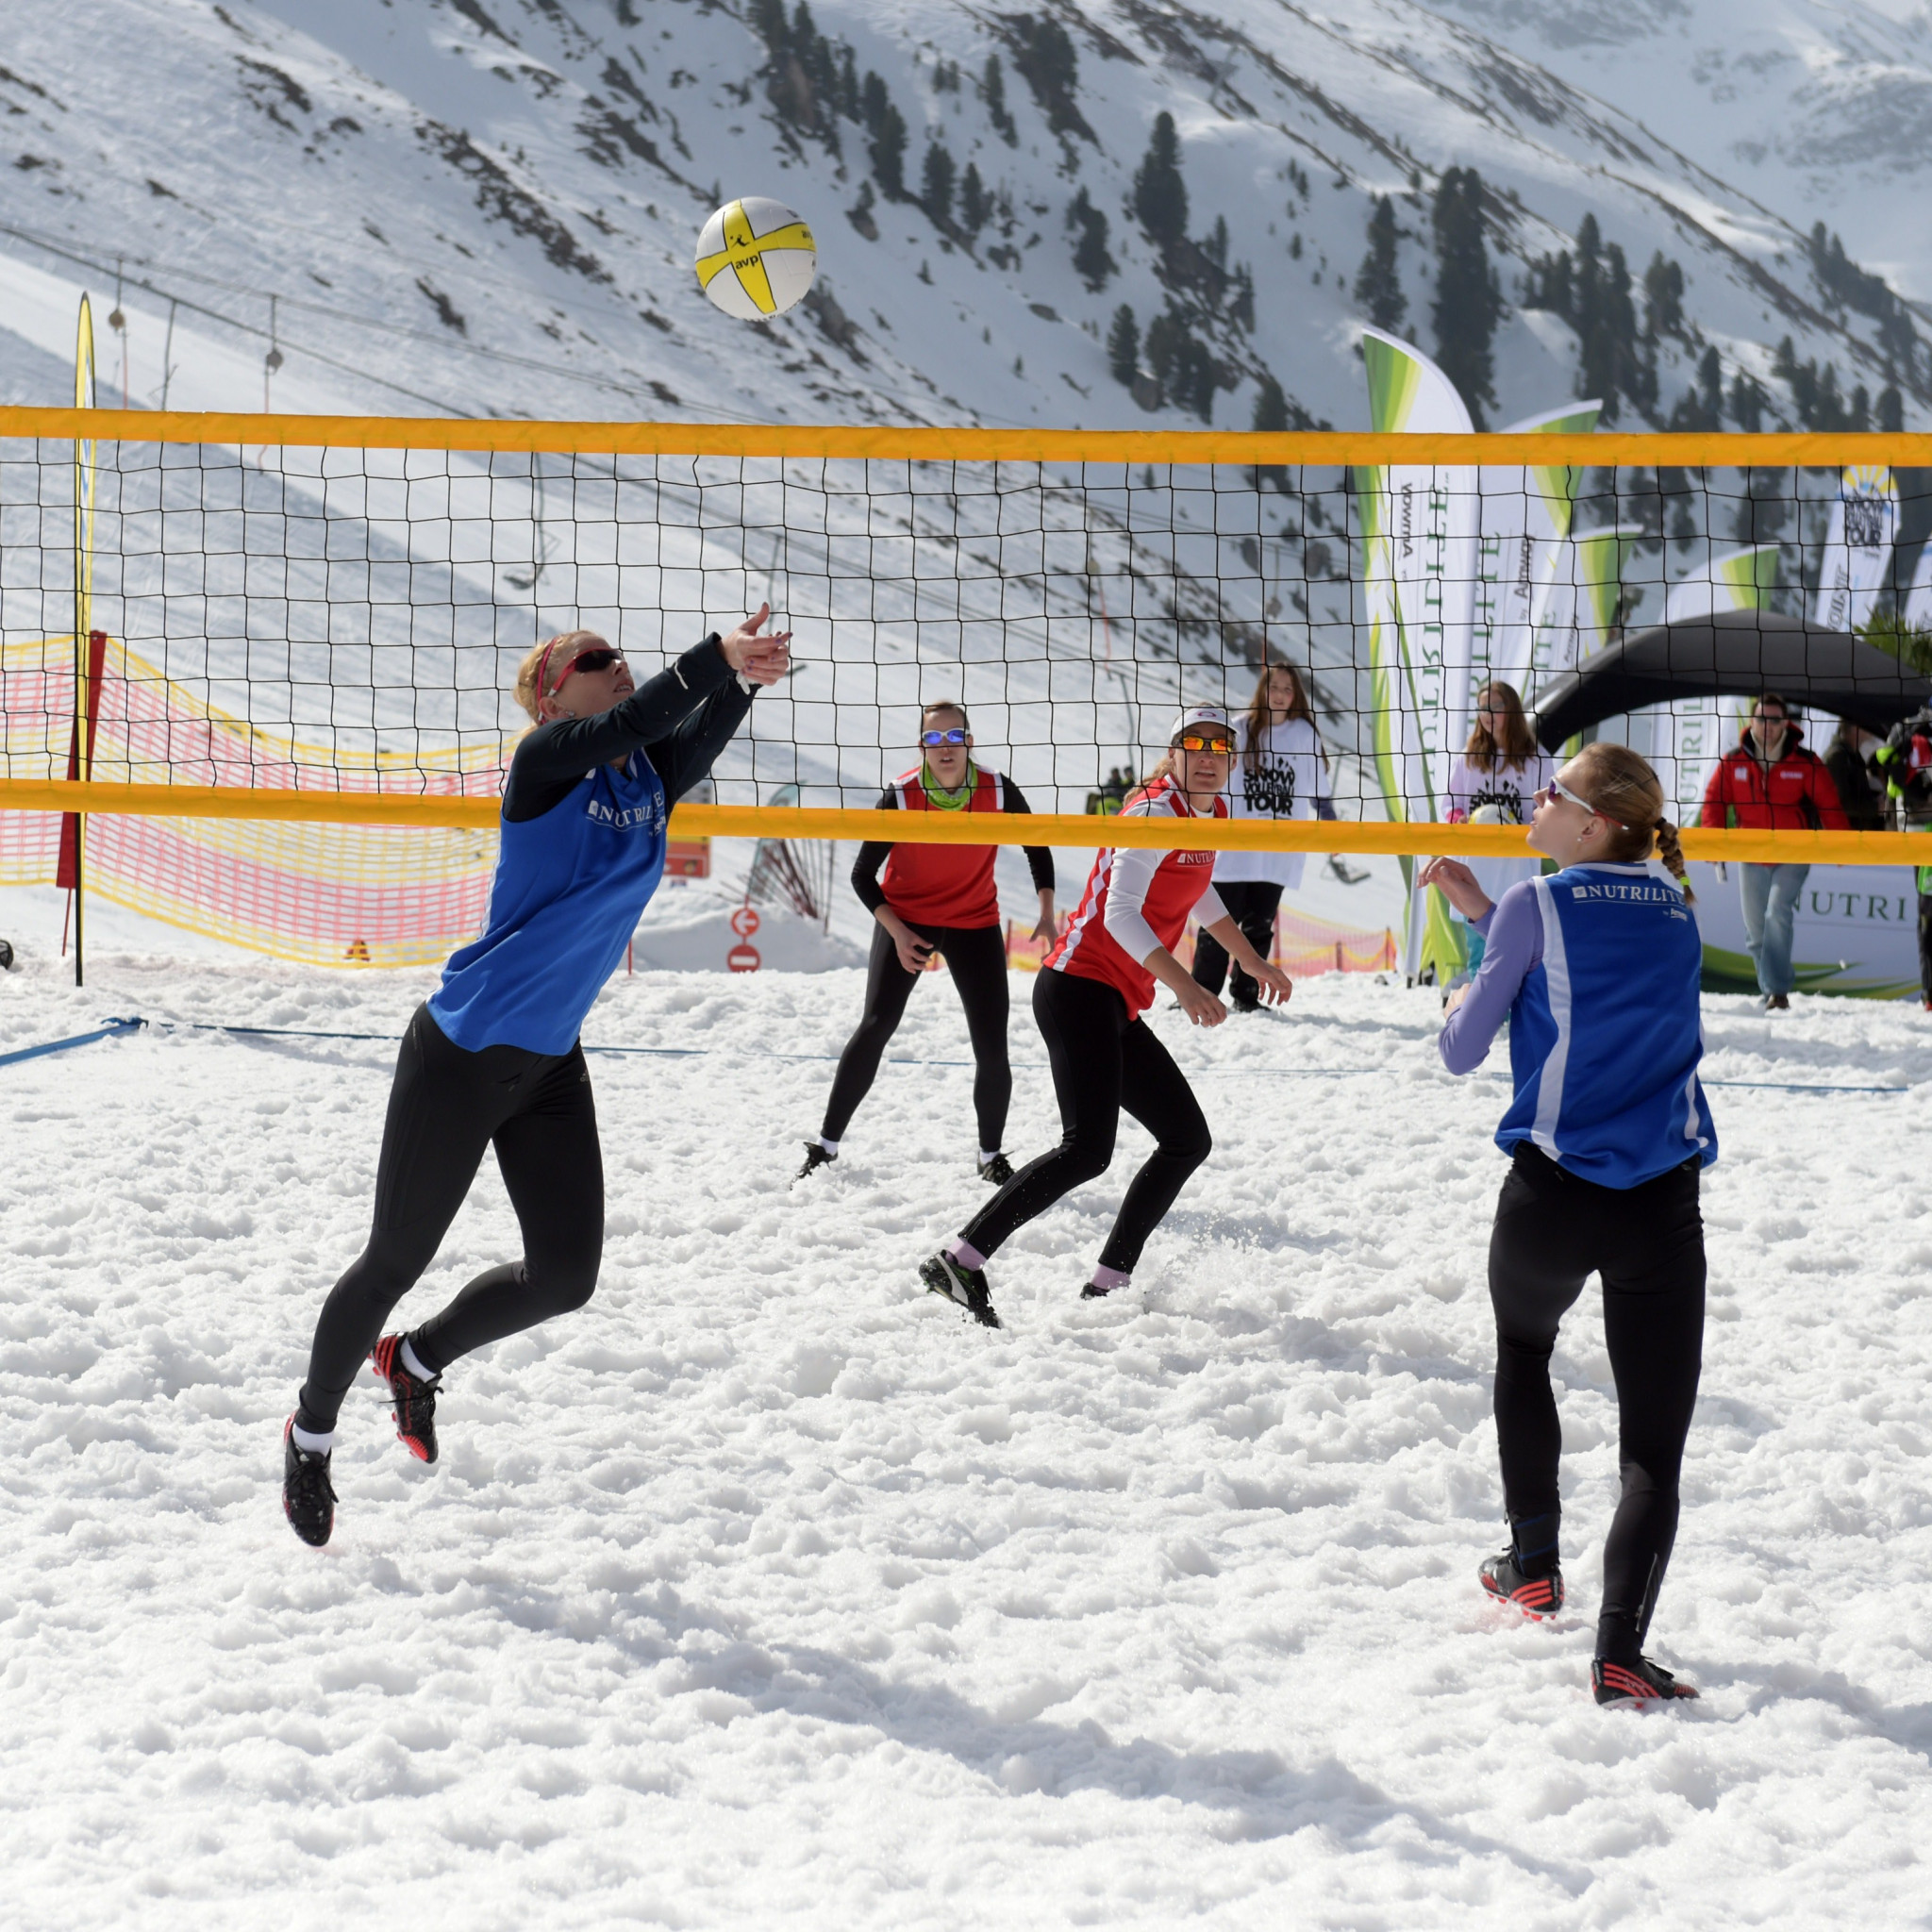 New 3x3 snow volleyball format established in bid to gain Winter Olympic inclusion